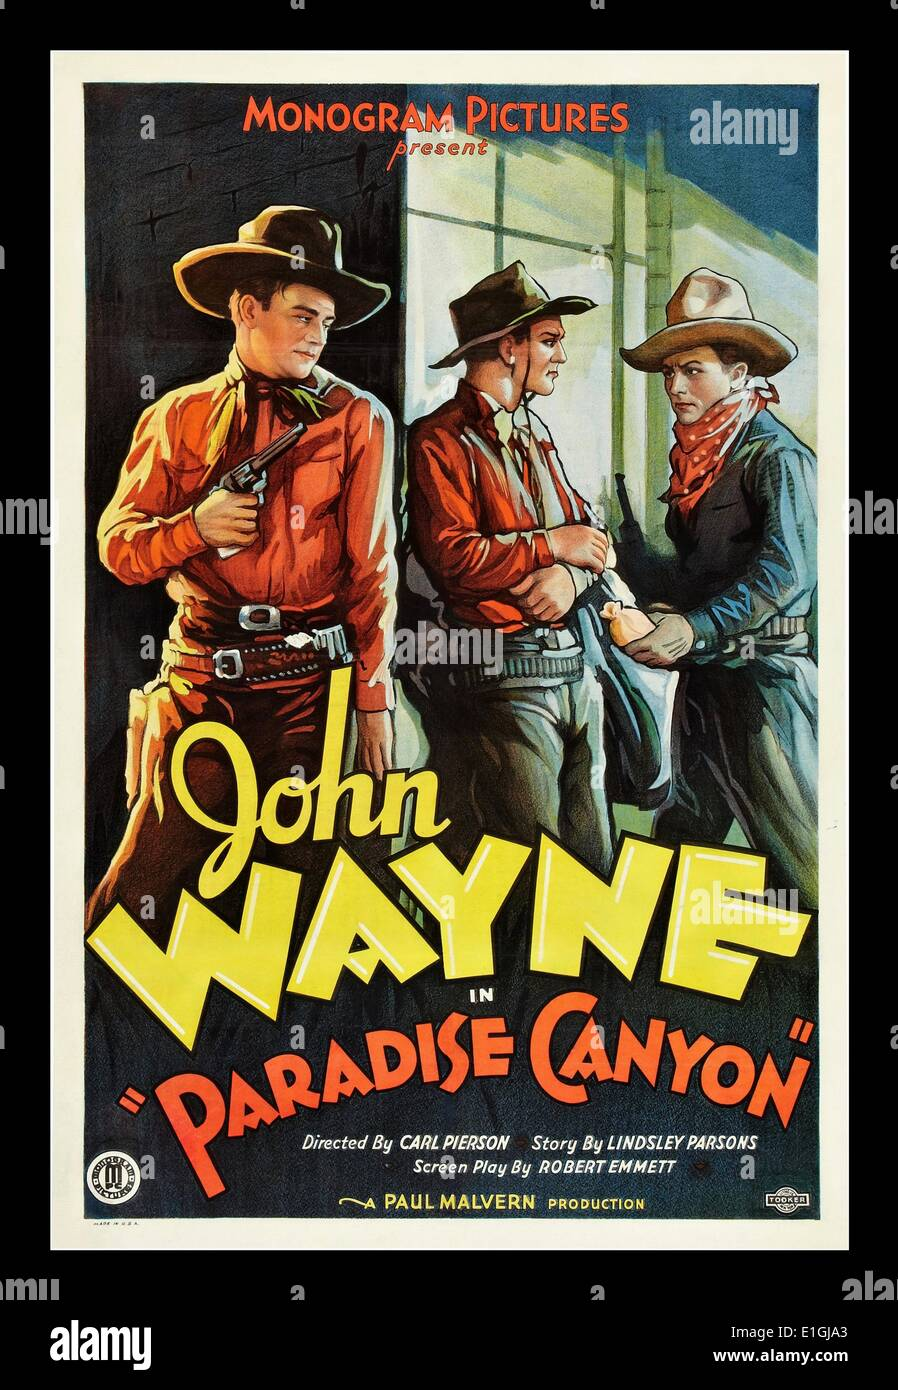 'Paradise Canyon' a 1935 western movie starring John Wayne - Stock Image